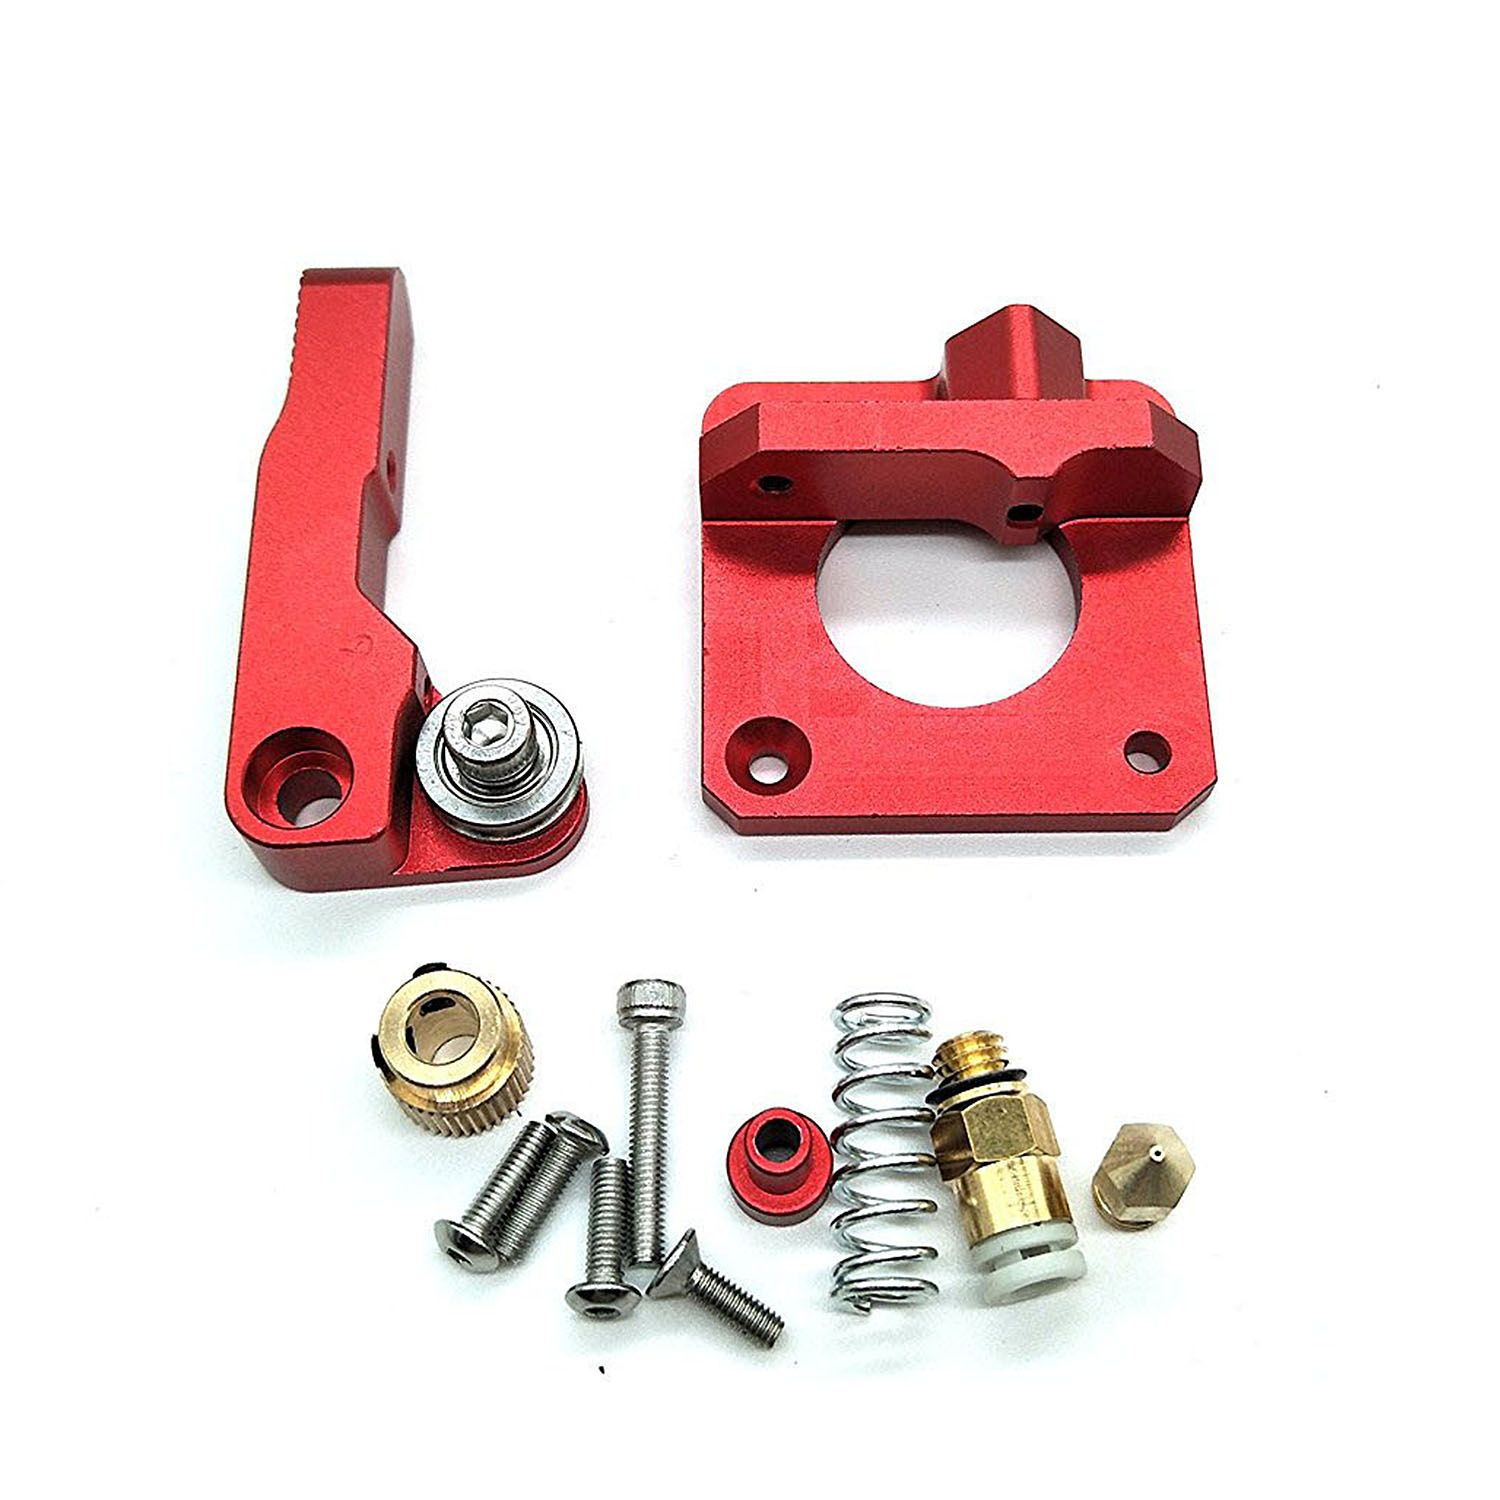 CR-10 Extruder Upgraded Replacement, Aluminum MK8 Drive Feed 3D Printer Extruders for Creality CR-10, CR-10S, CR-10 S4, CR-10